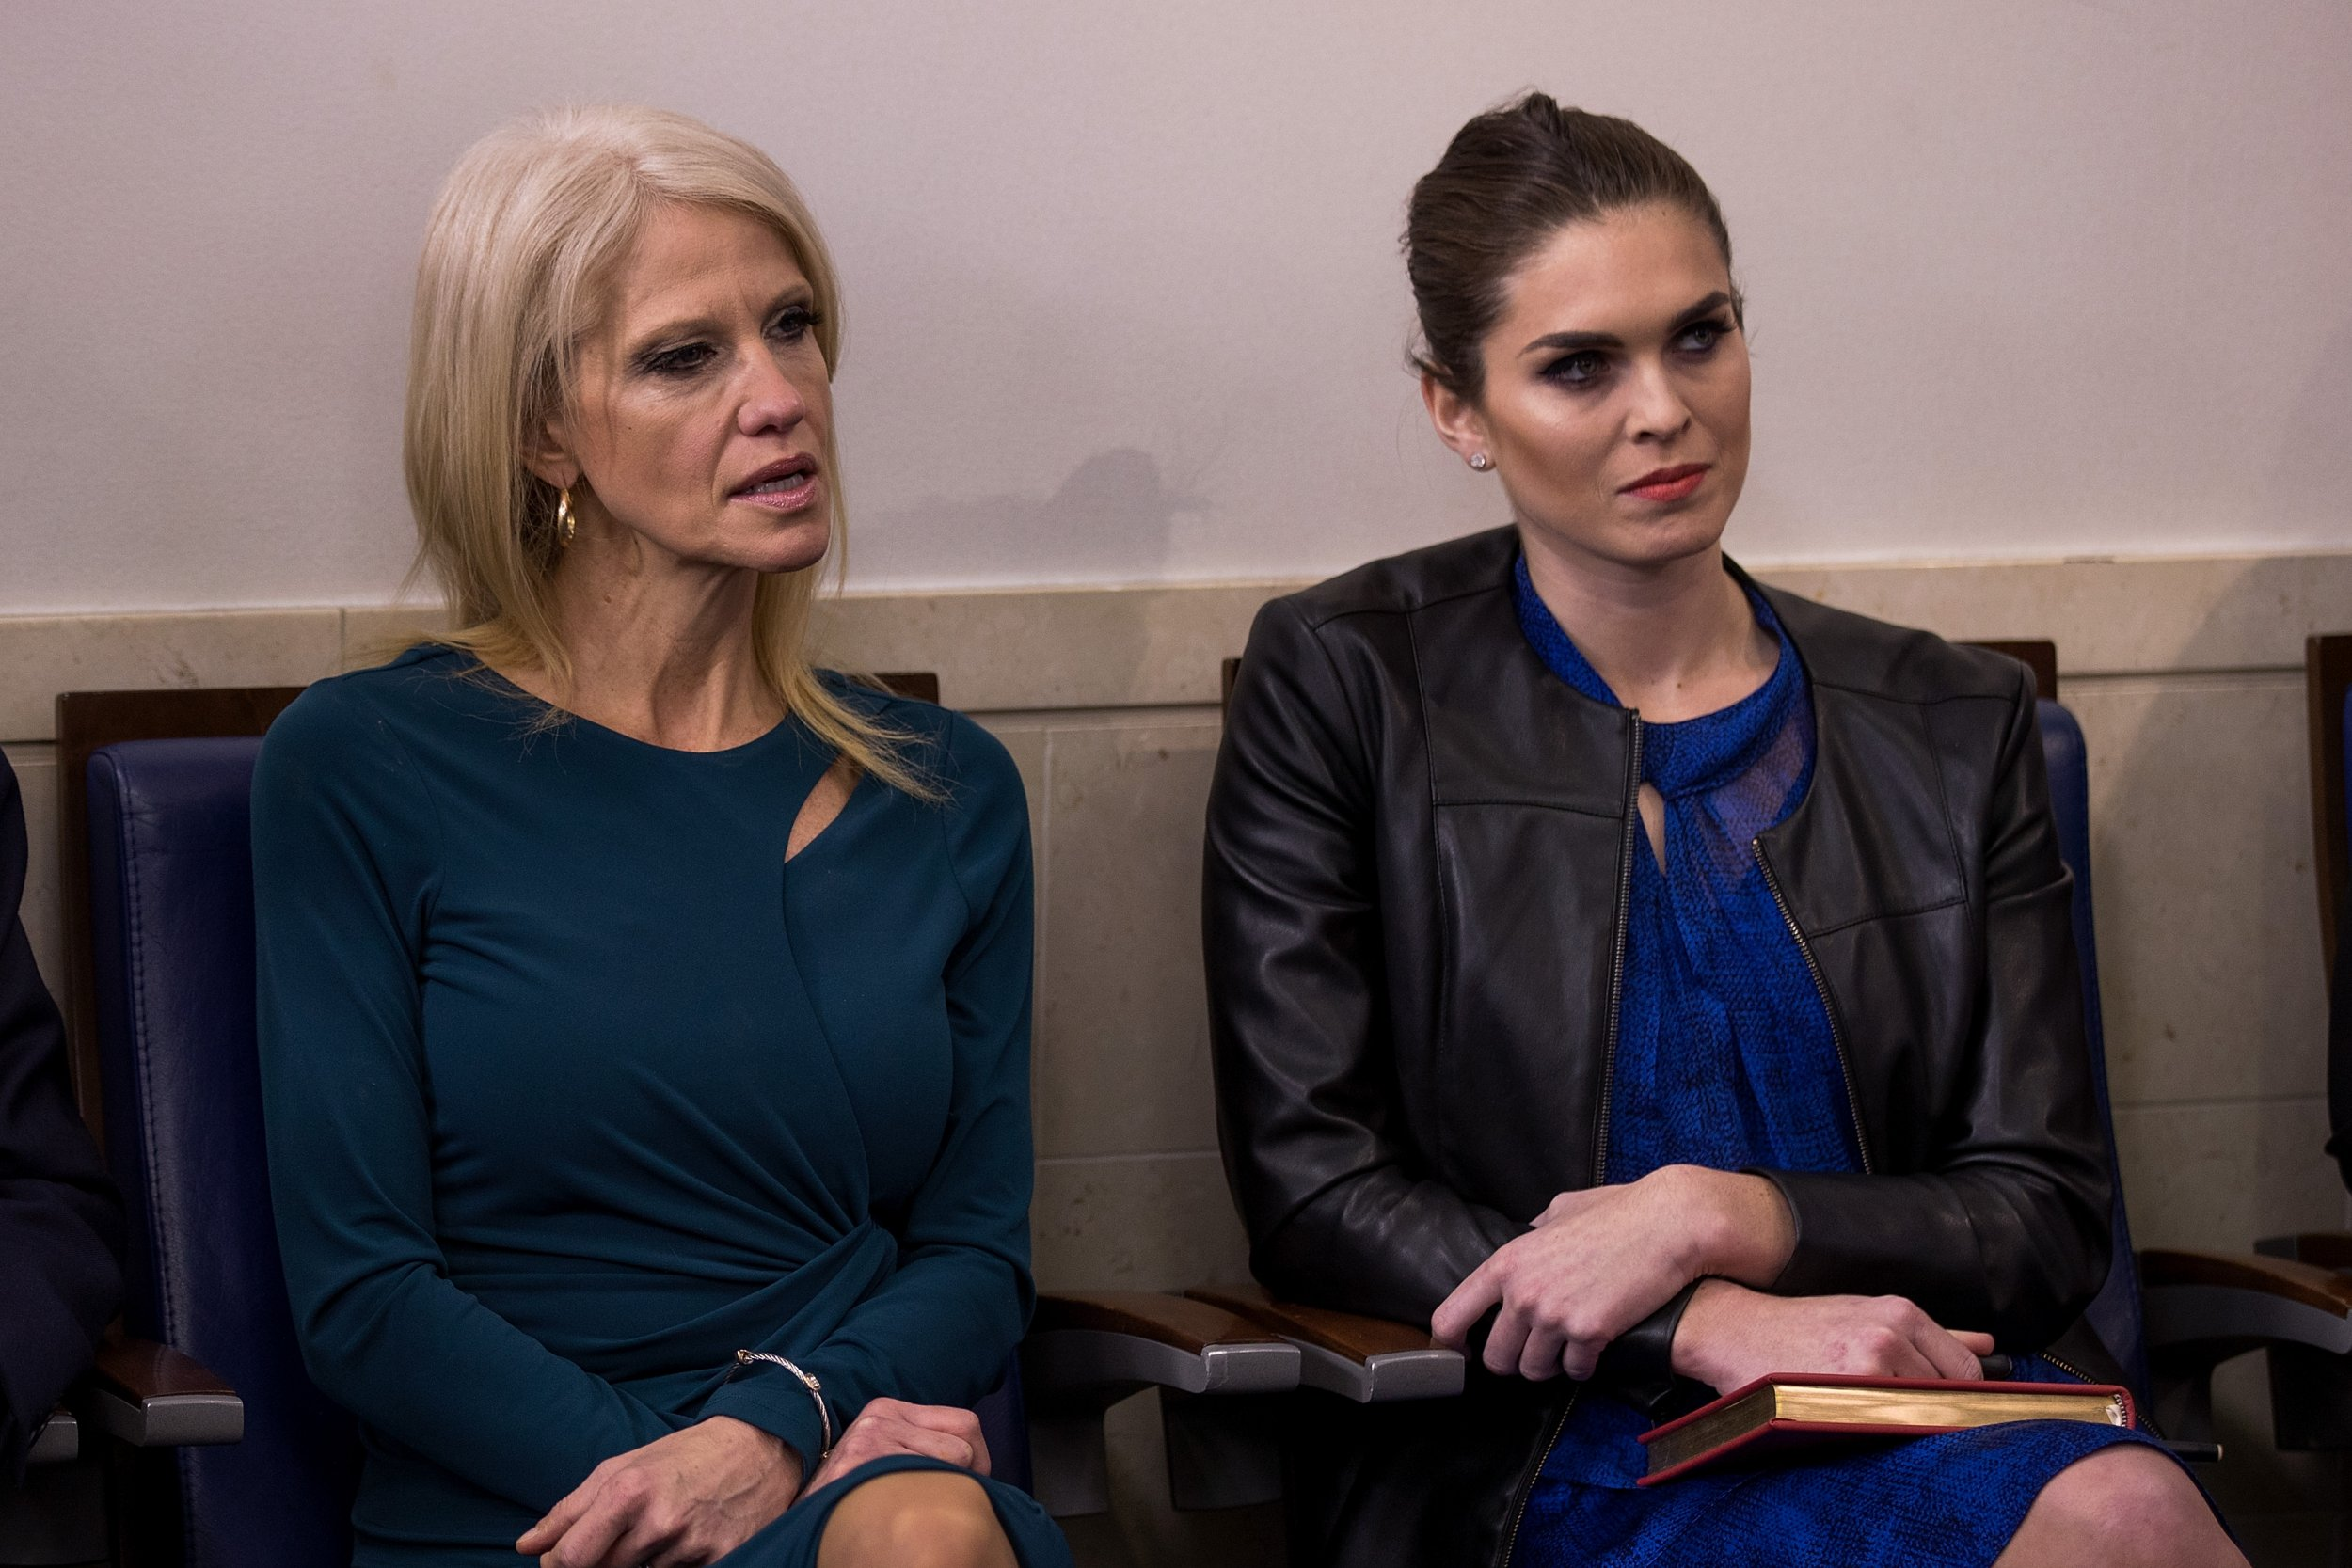 01_19_Hope_Hicks_House_intelligence